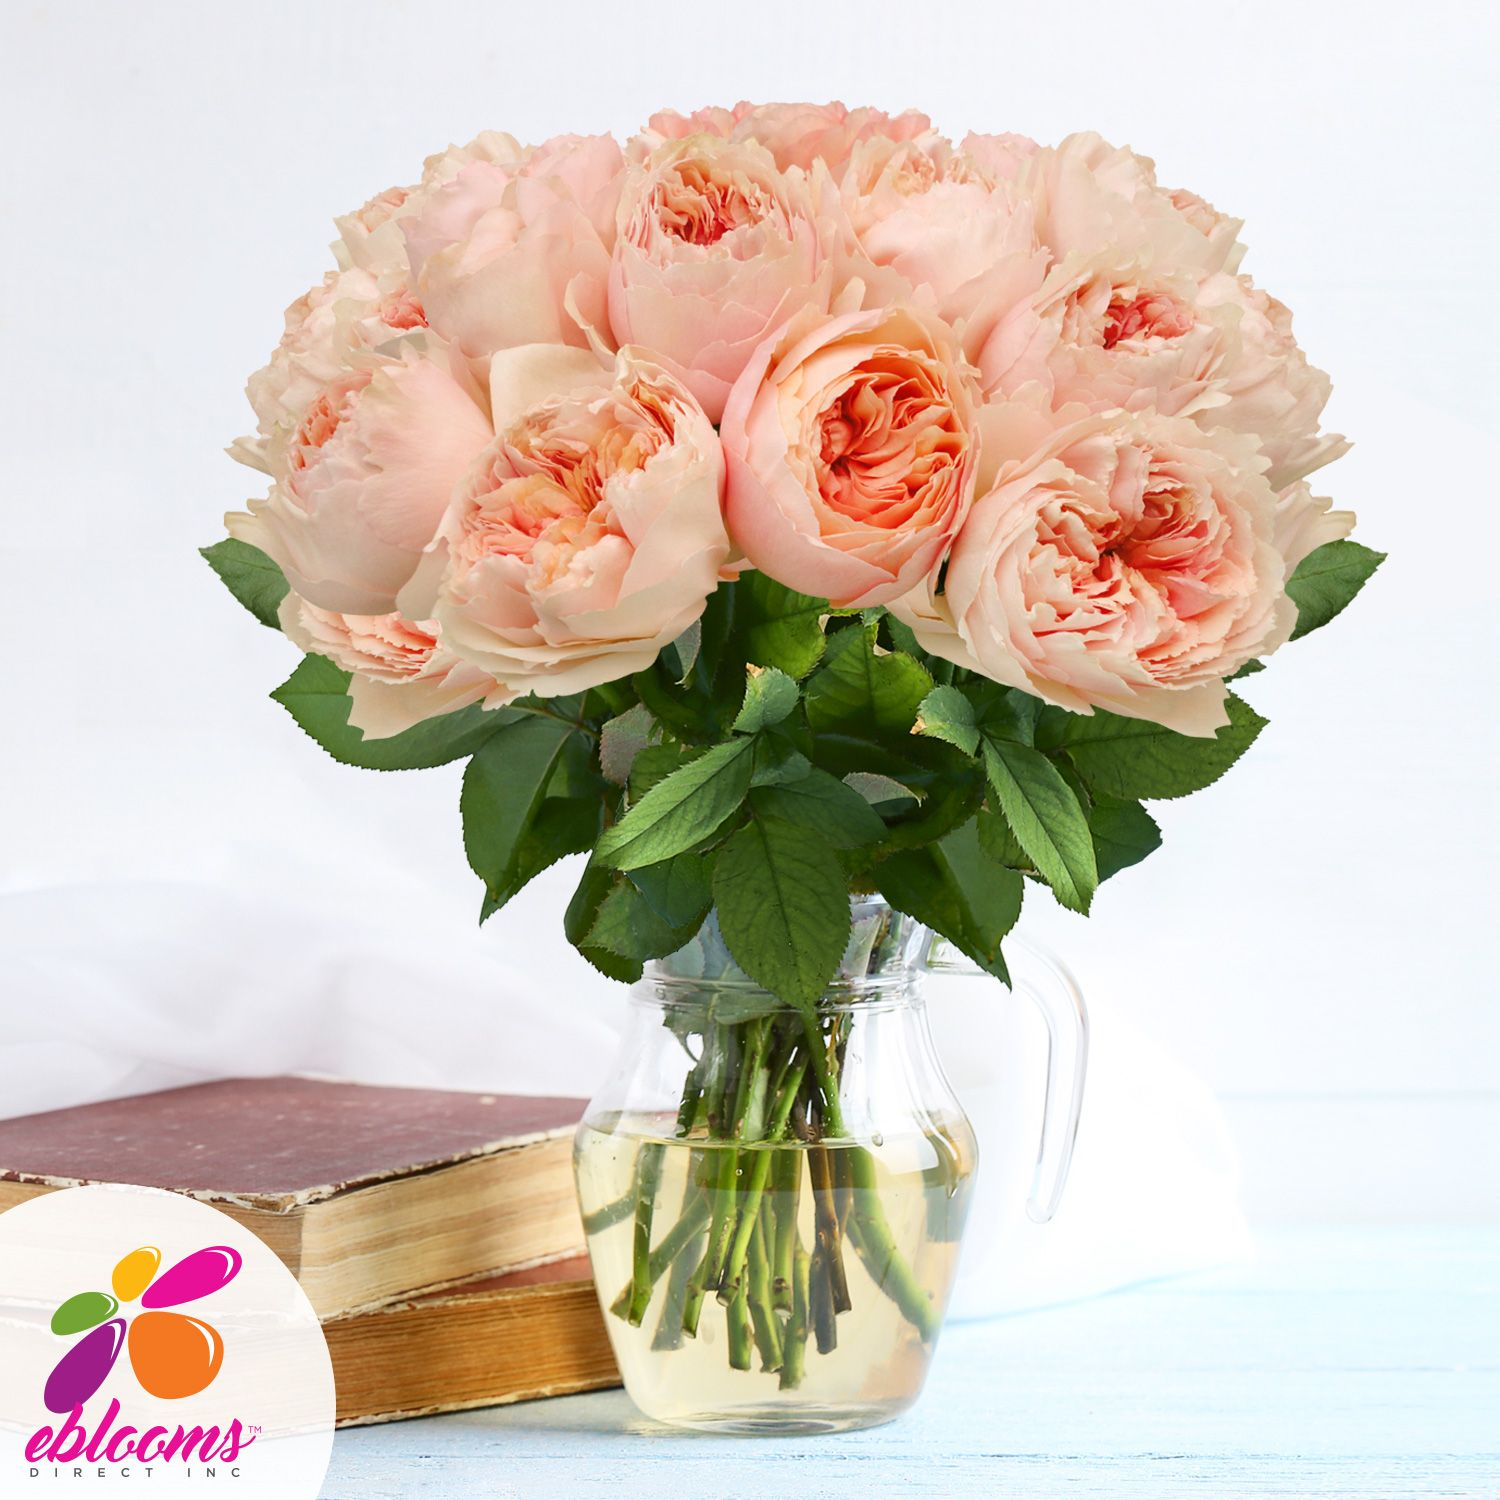 Wholesale Flowers For Weddings Events: Garden Rose Hot Pink - EbloomsDirect